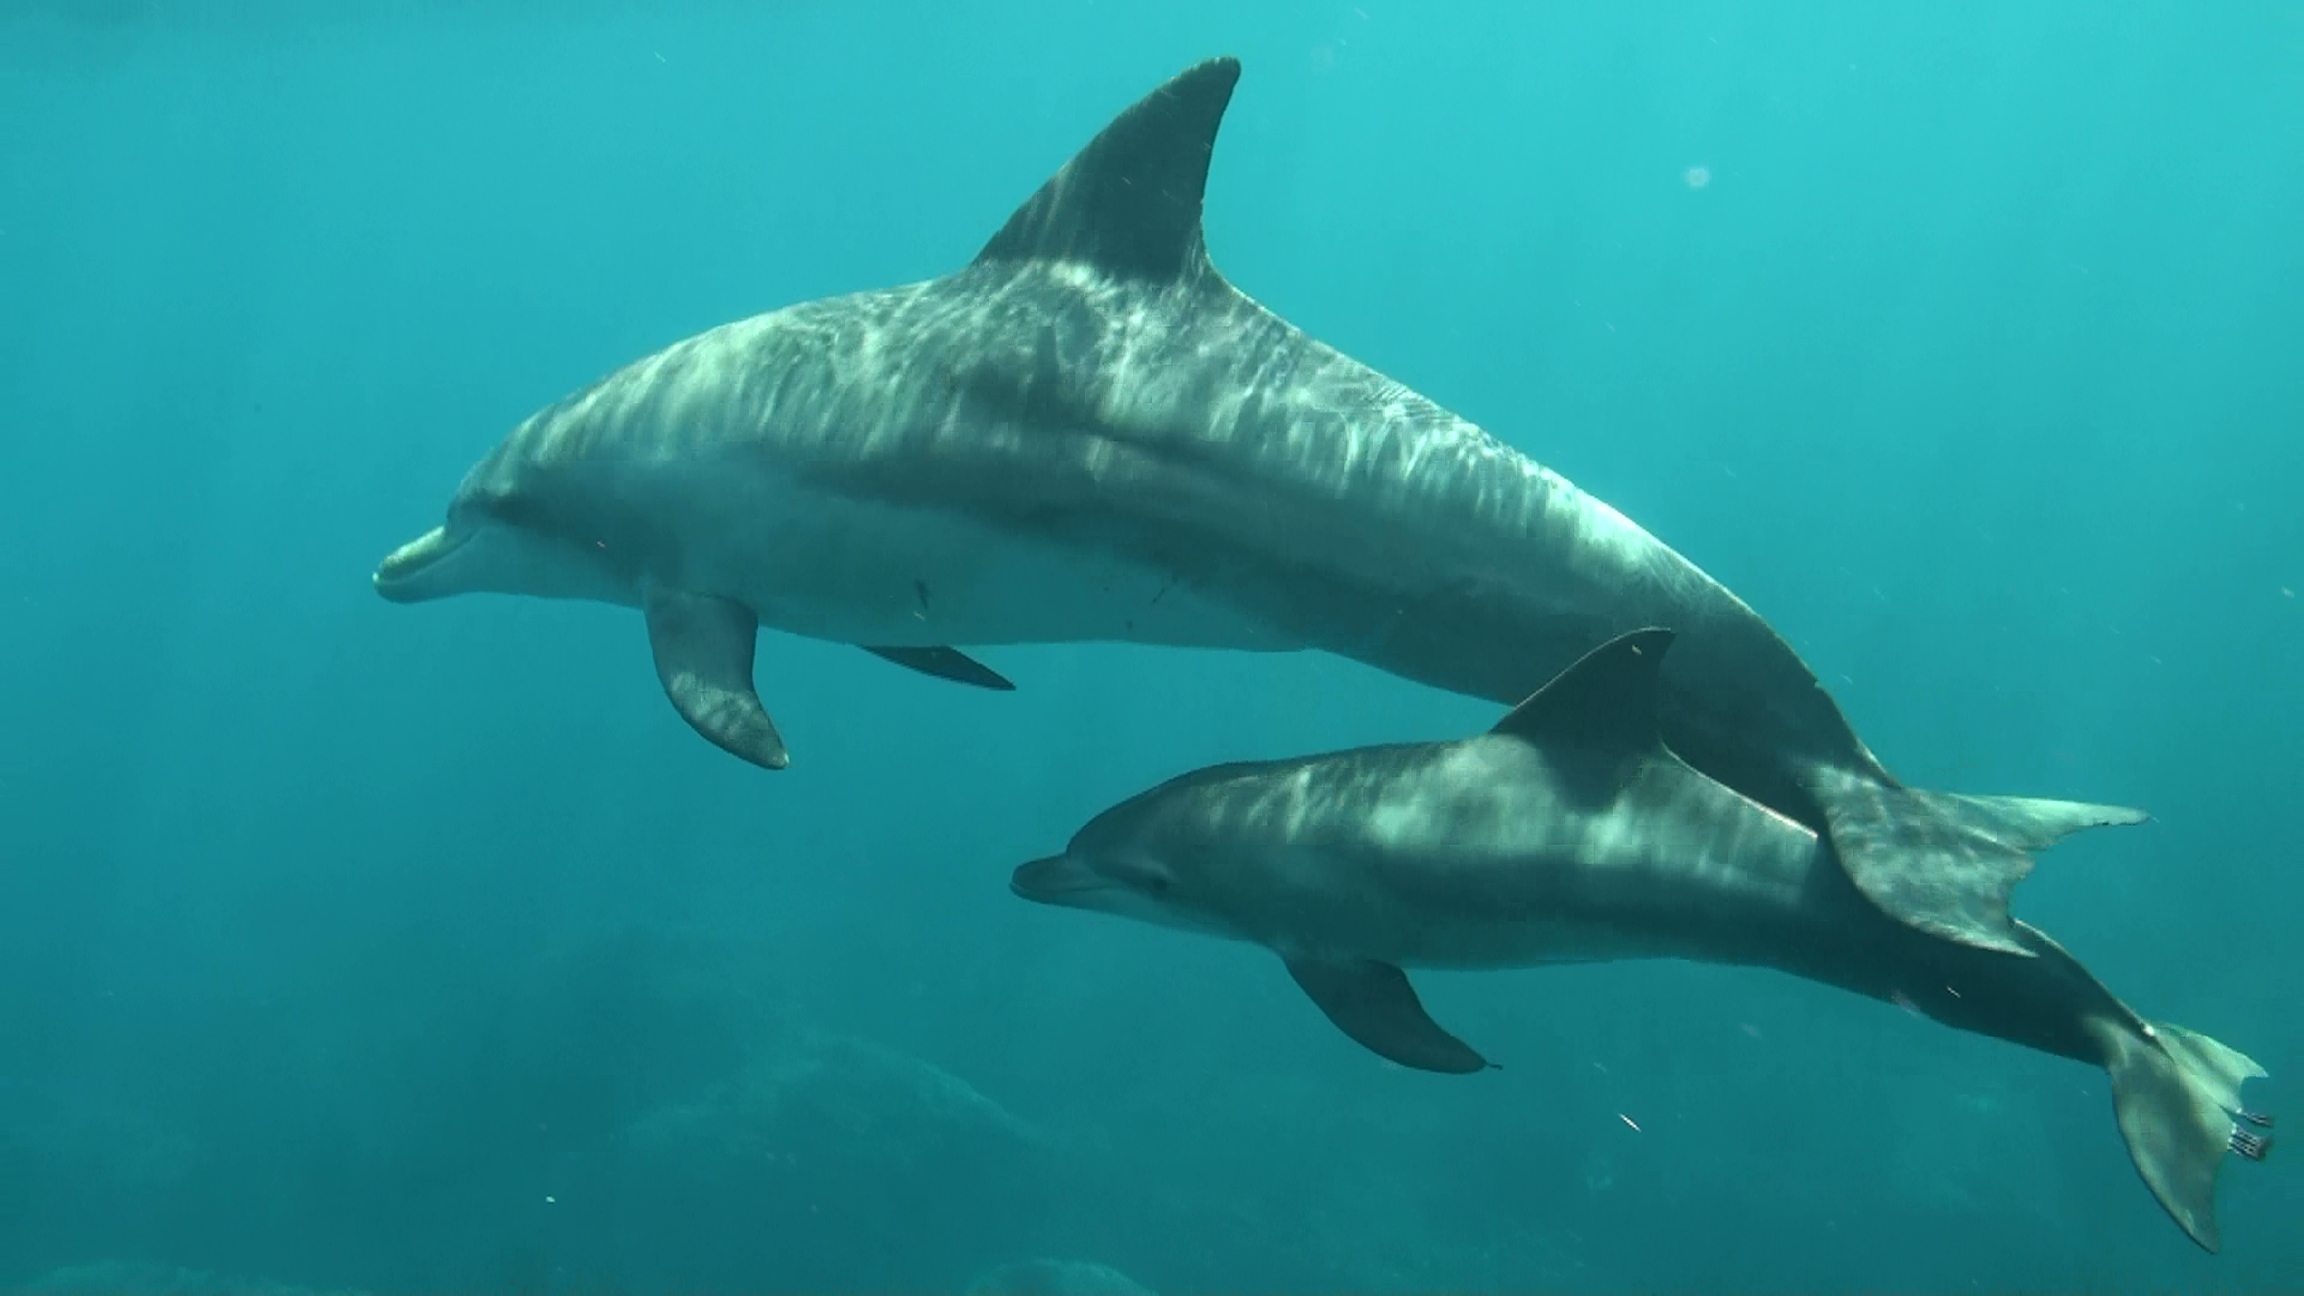 Dolphin displays willingness to help others, researchers say(Source:The Asahi Shimbun)